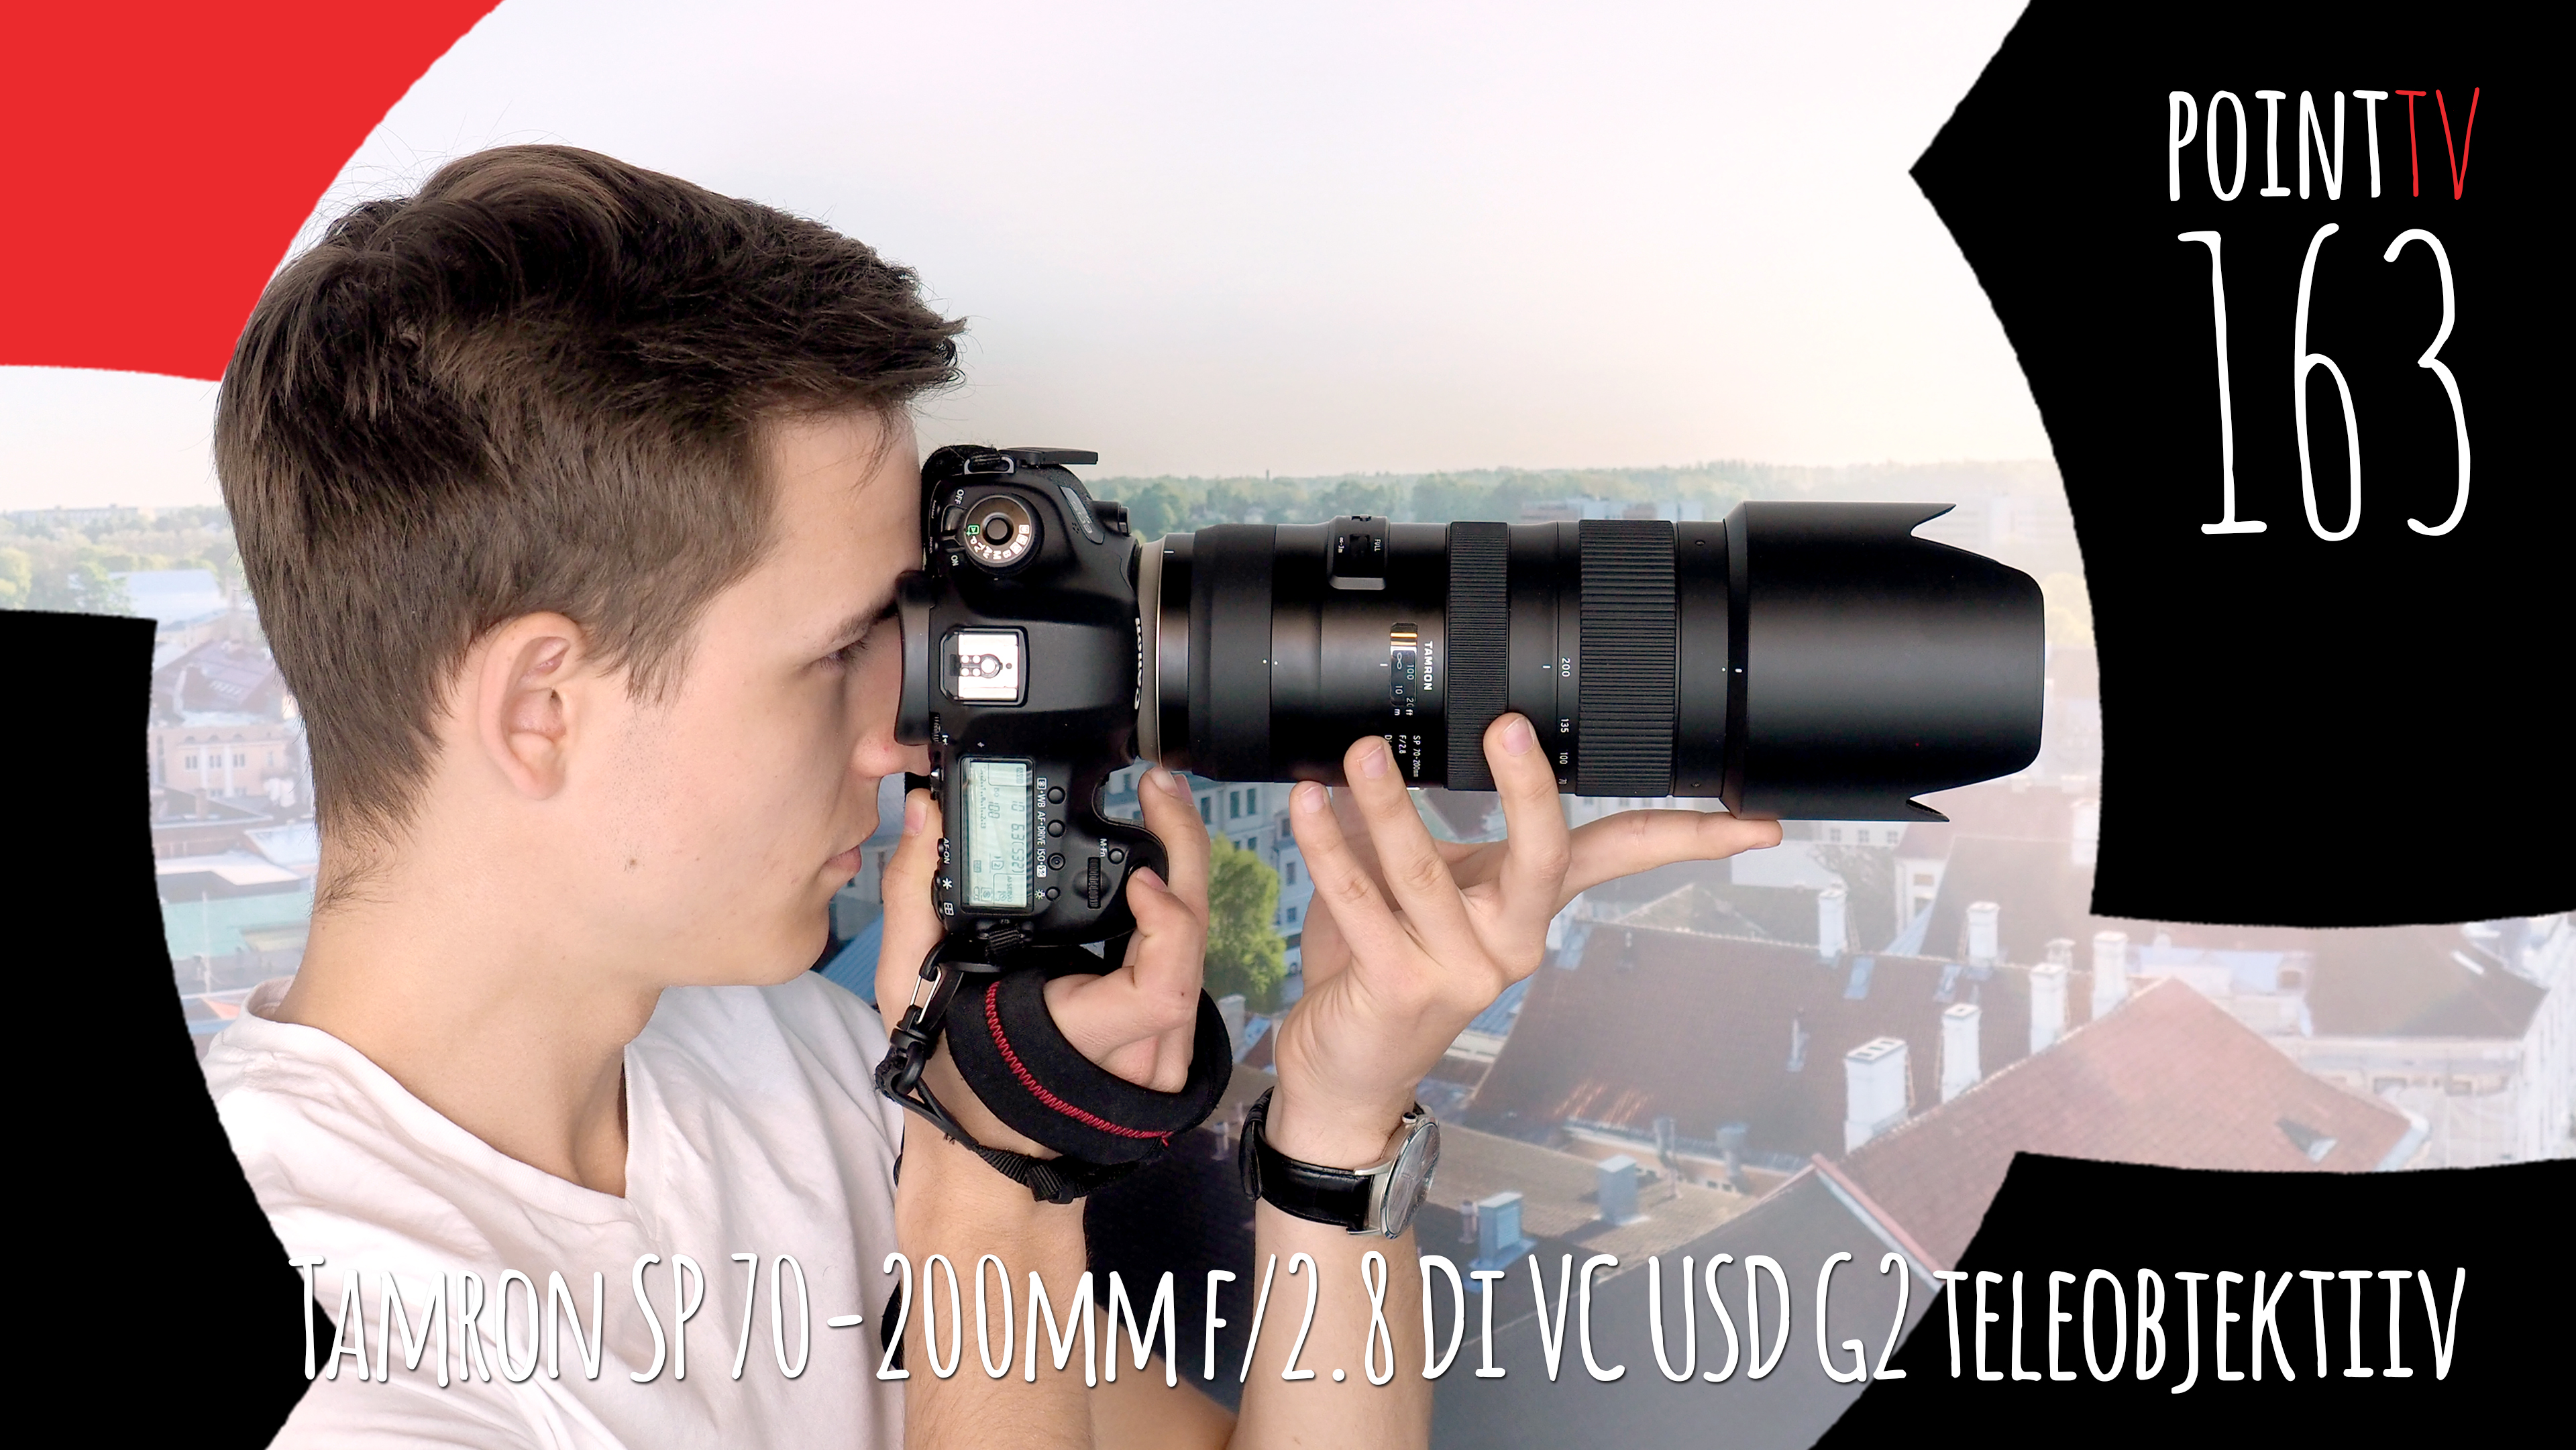 Point TV 163: Tamron SP 70-200mm f/2.8 Di VC USD G2 telesuumobjektiiv